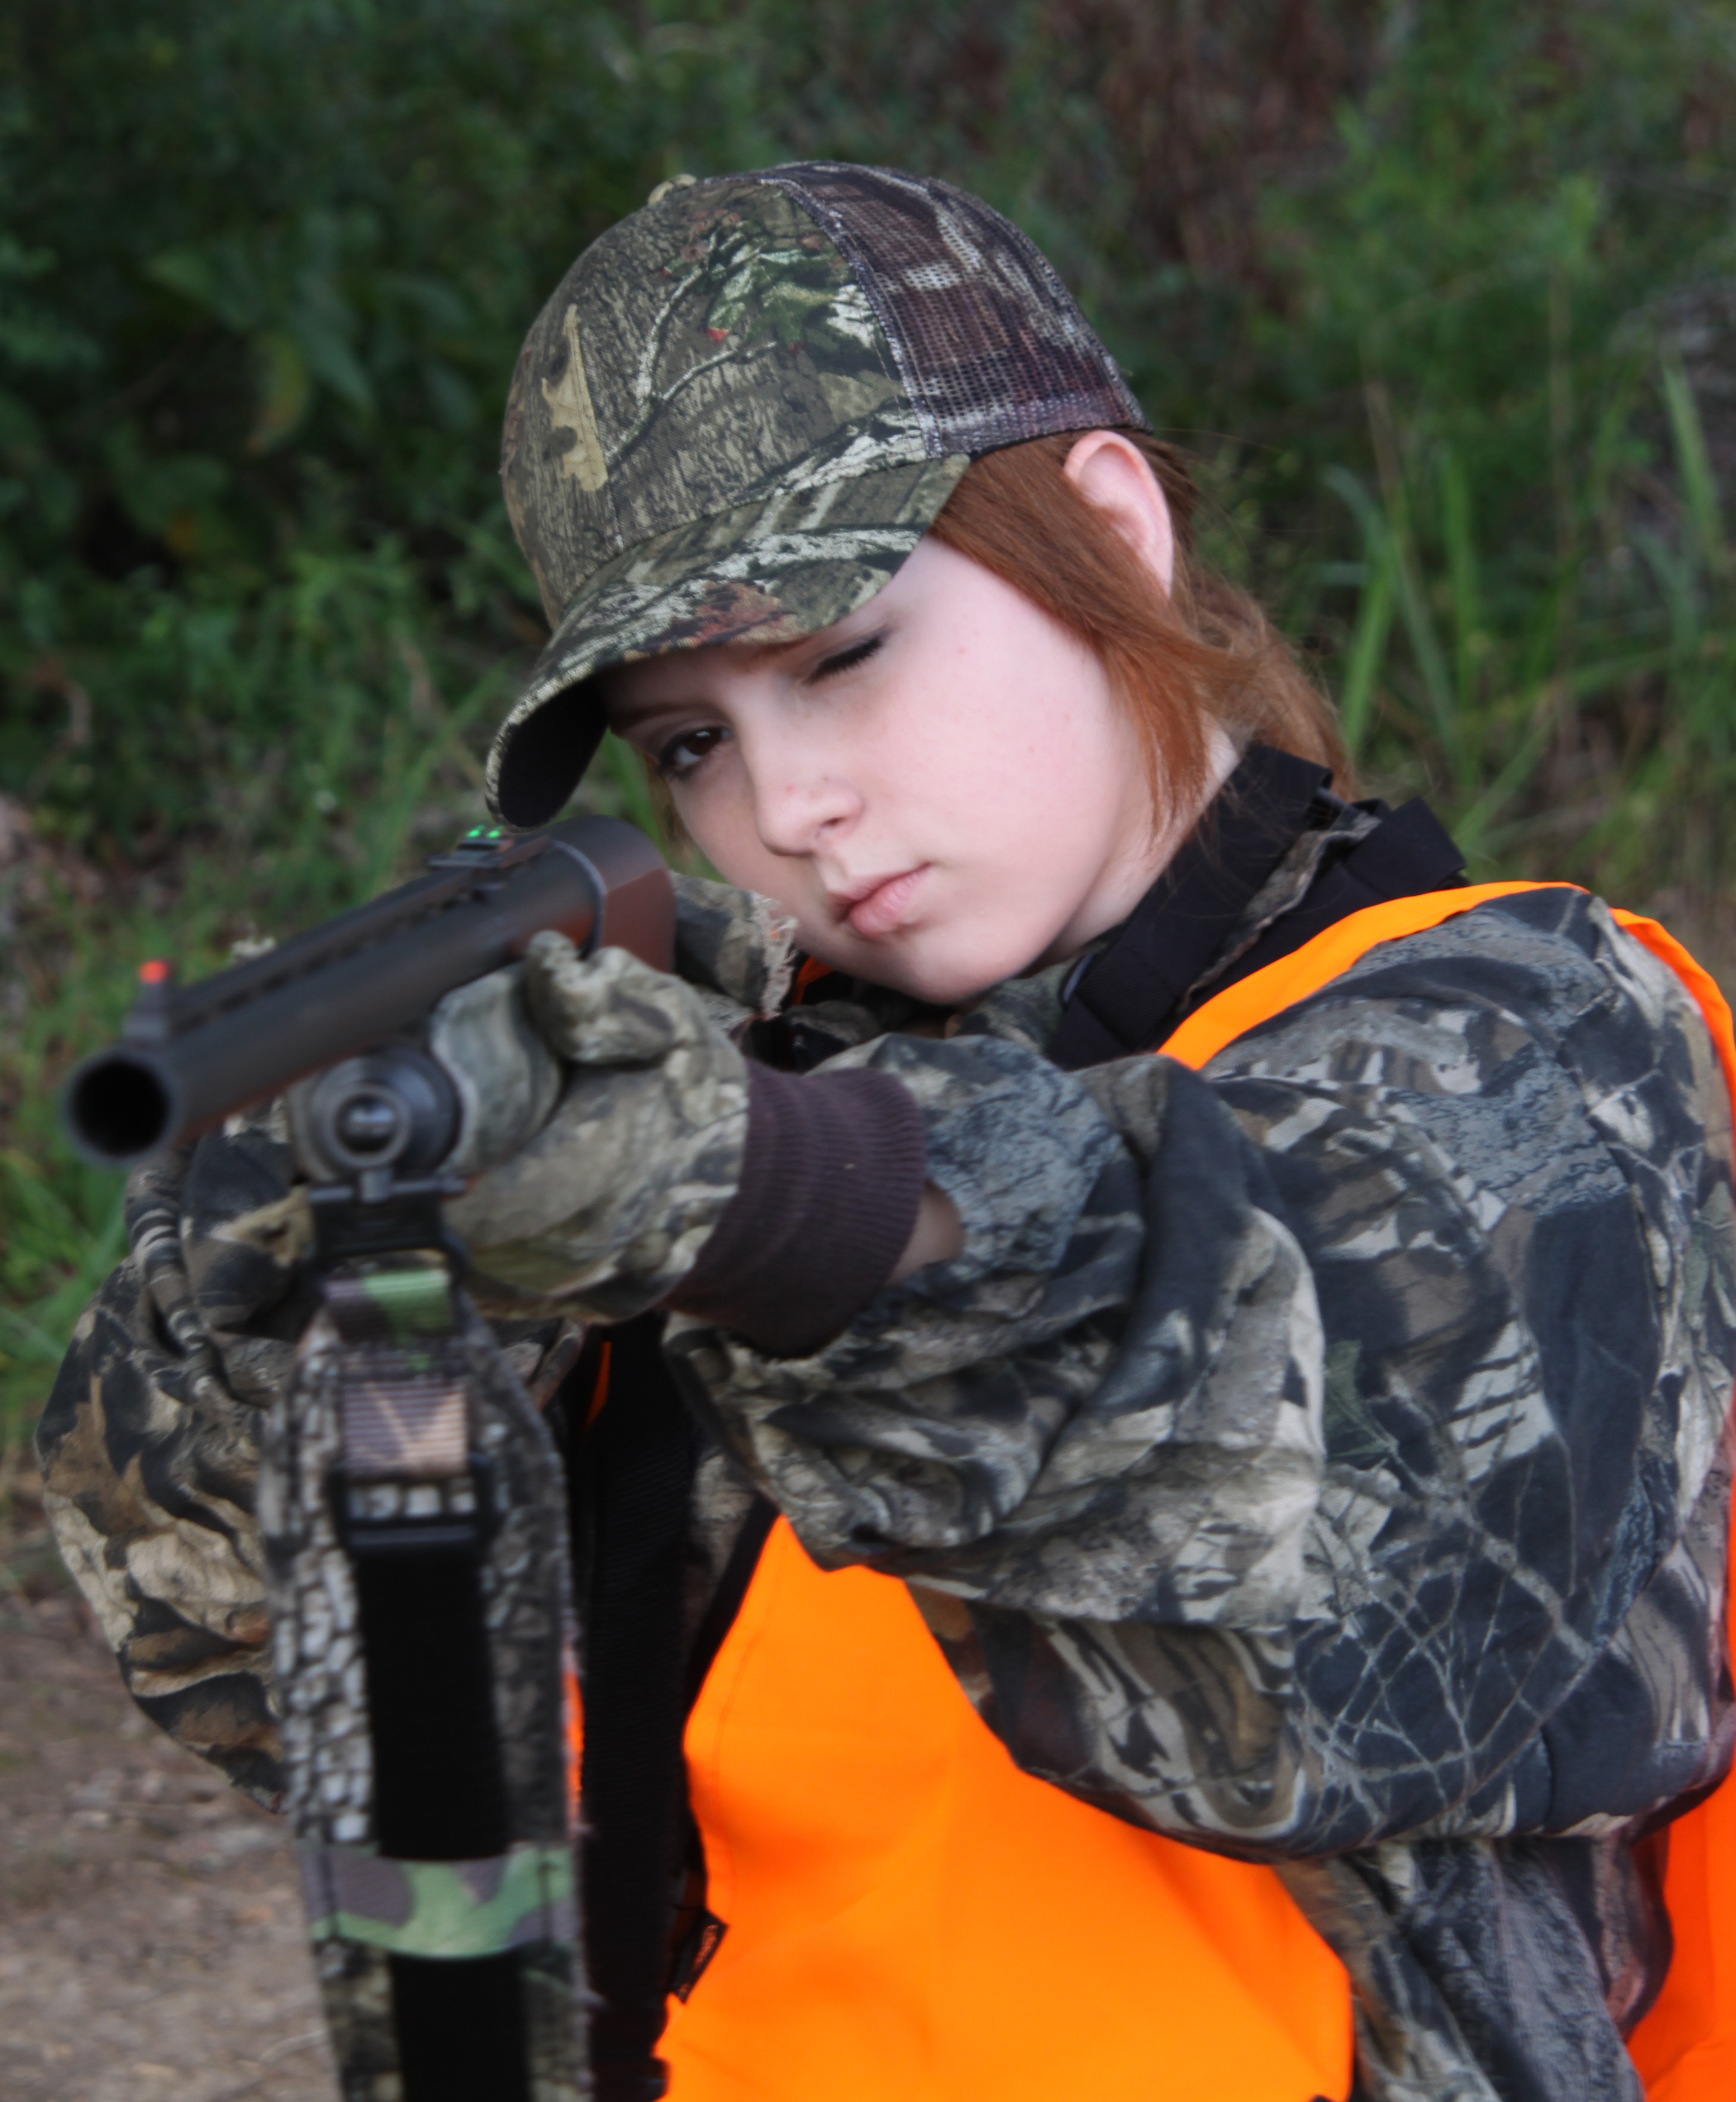 Try out rifle sight on a smooth for more accuracy when shotgun deer hunting.